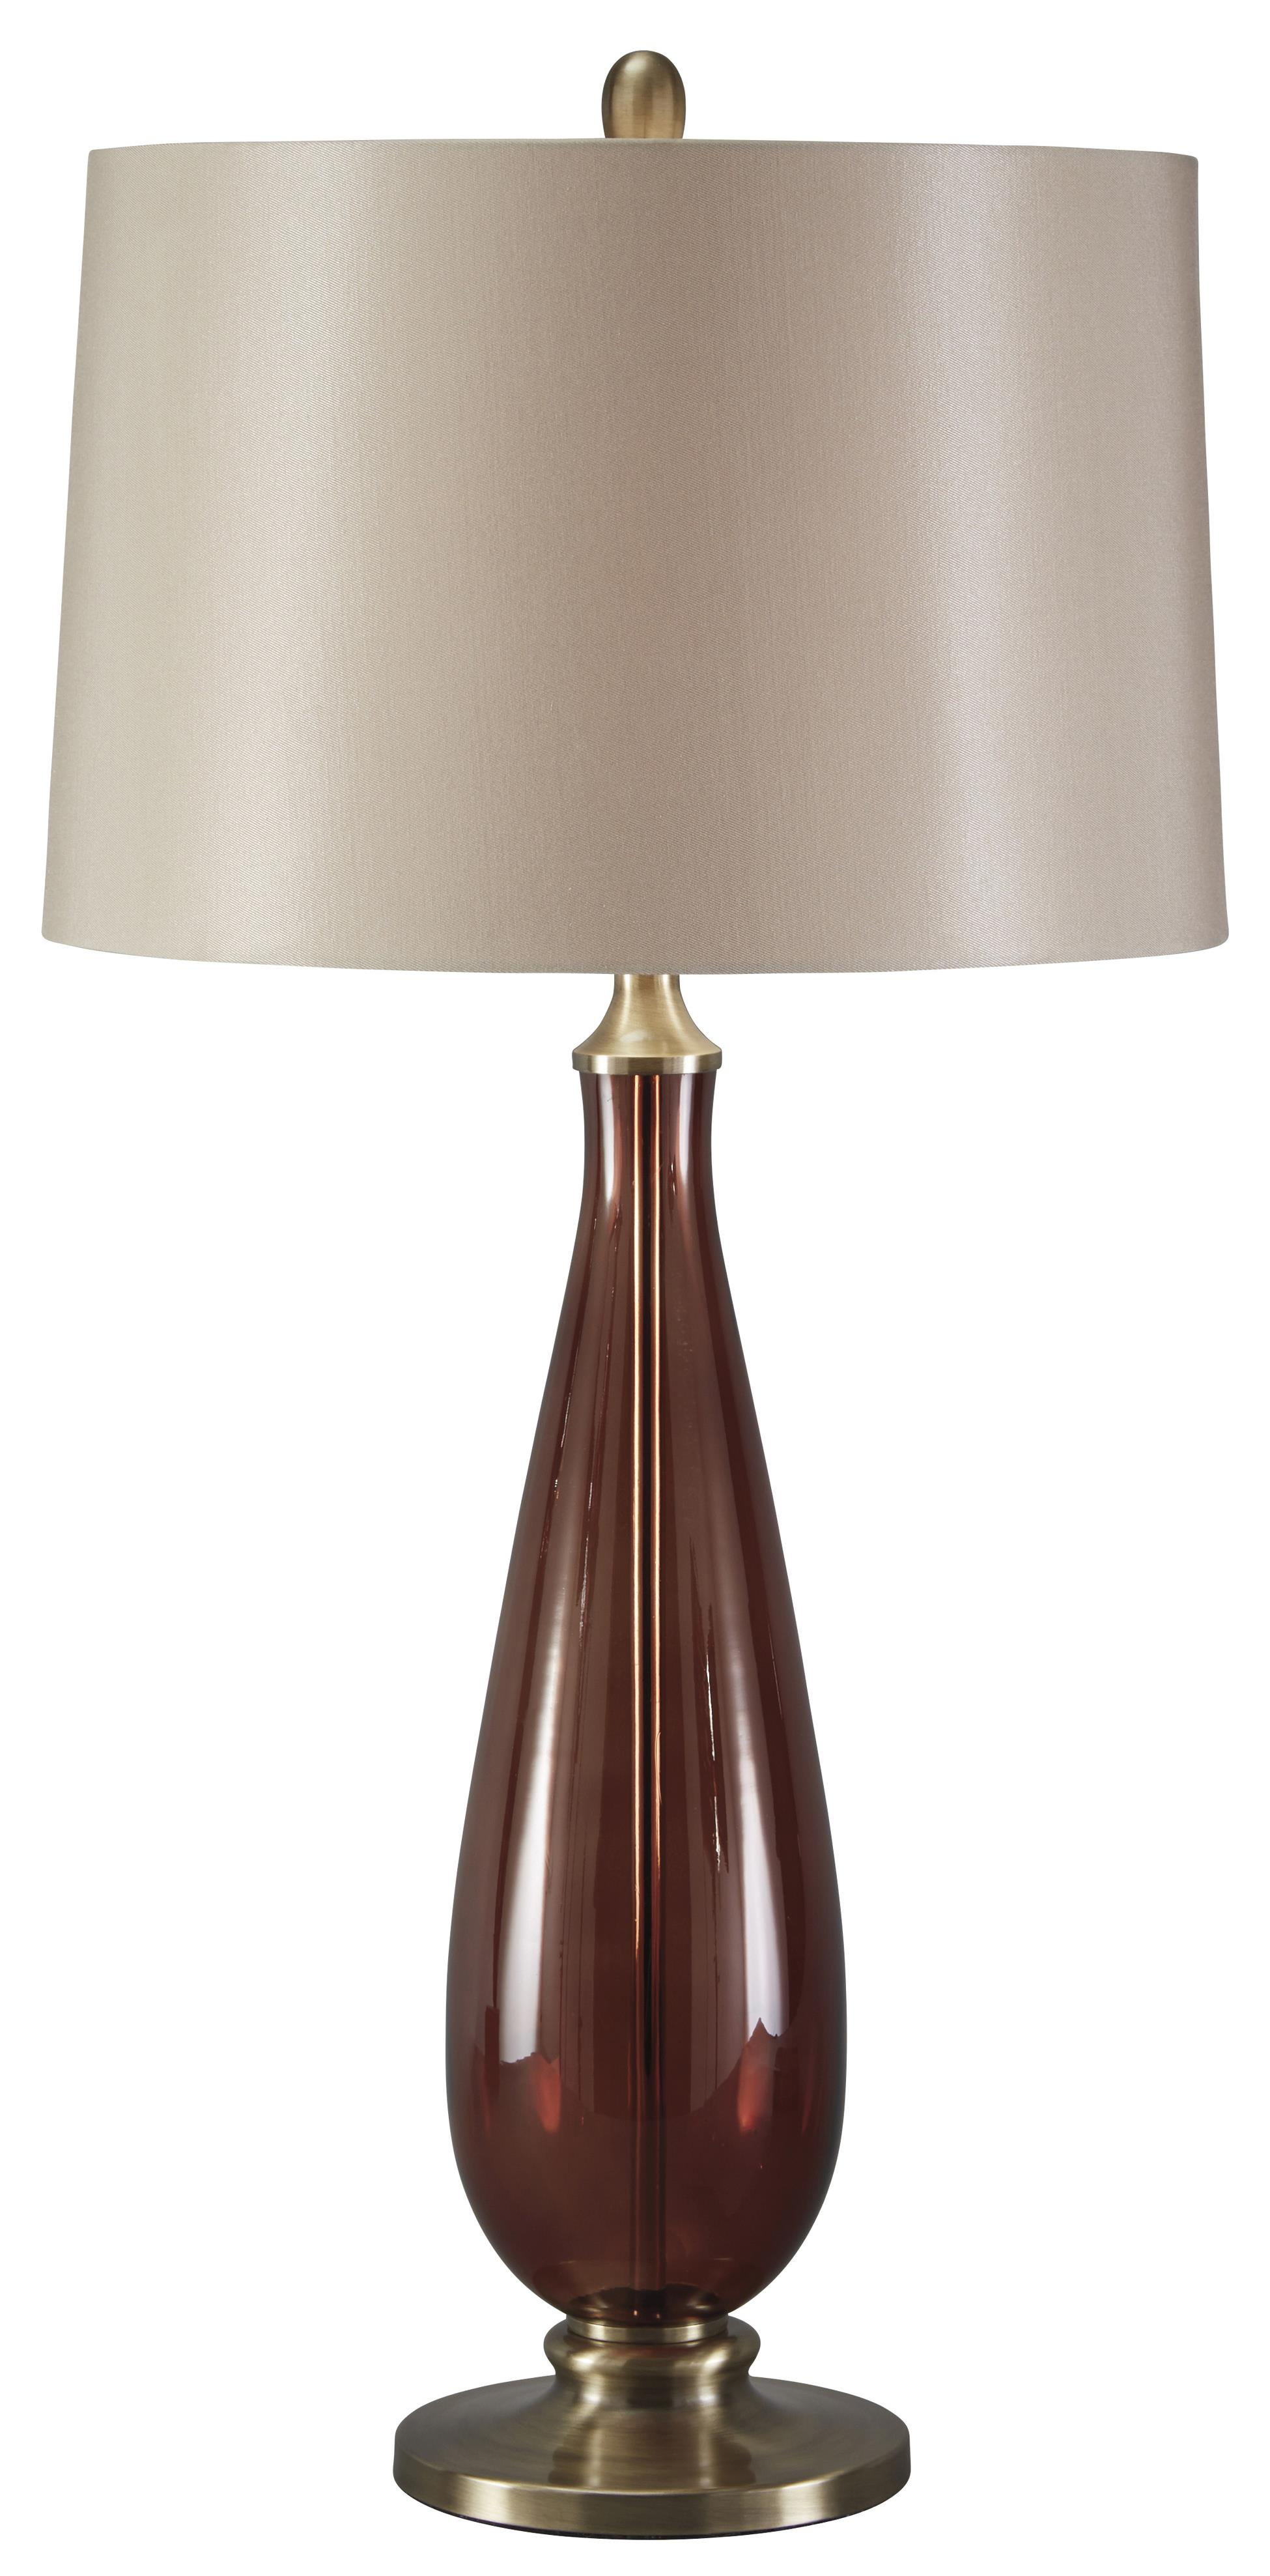 Signature Design by Ashley Lamps - Traditional Classics Sandera Glass Table Lamp - Item Number: L430134